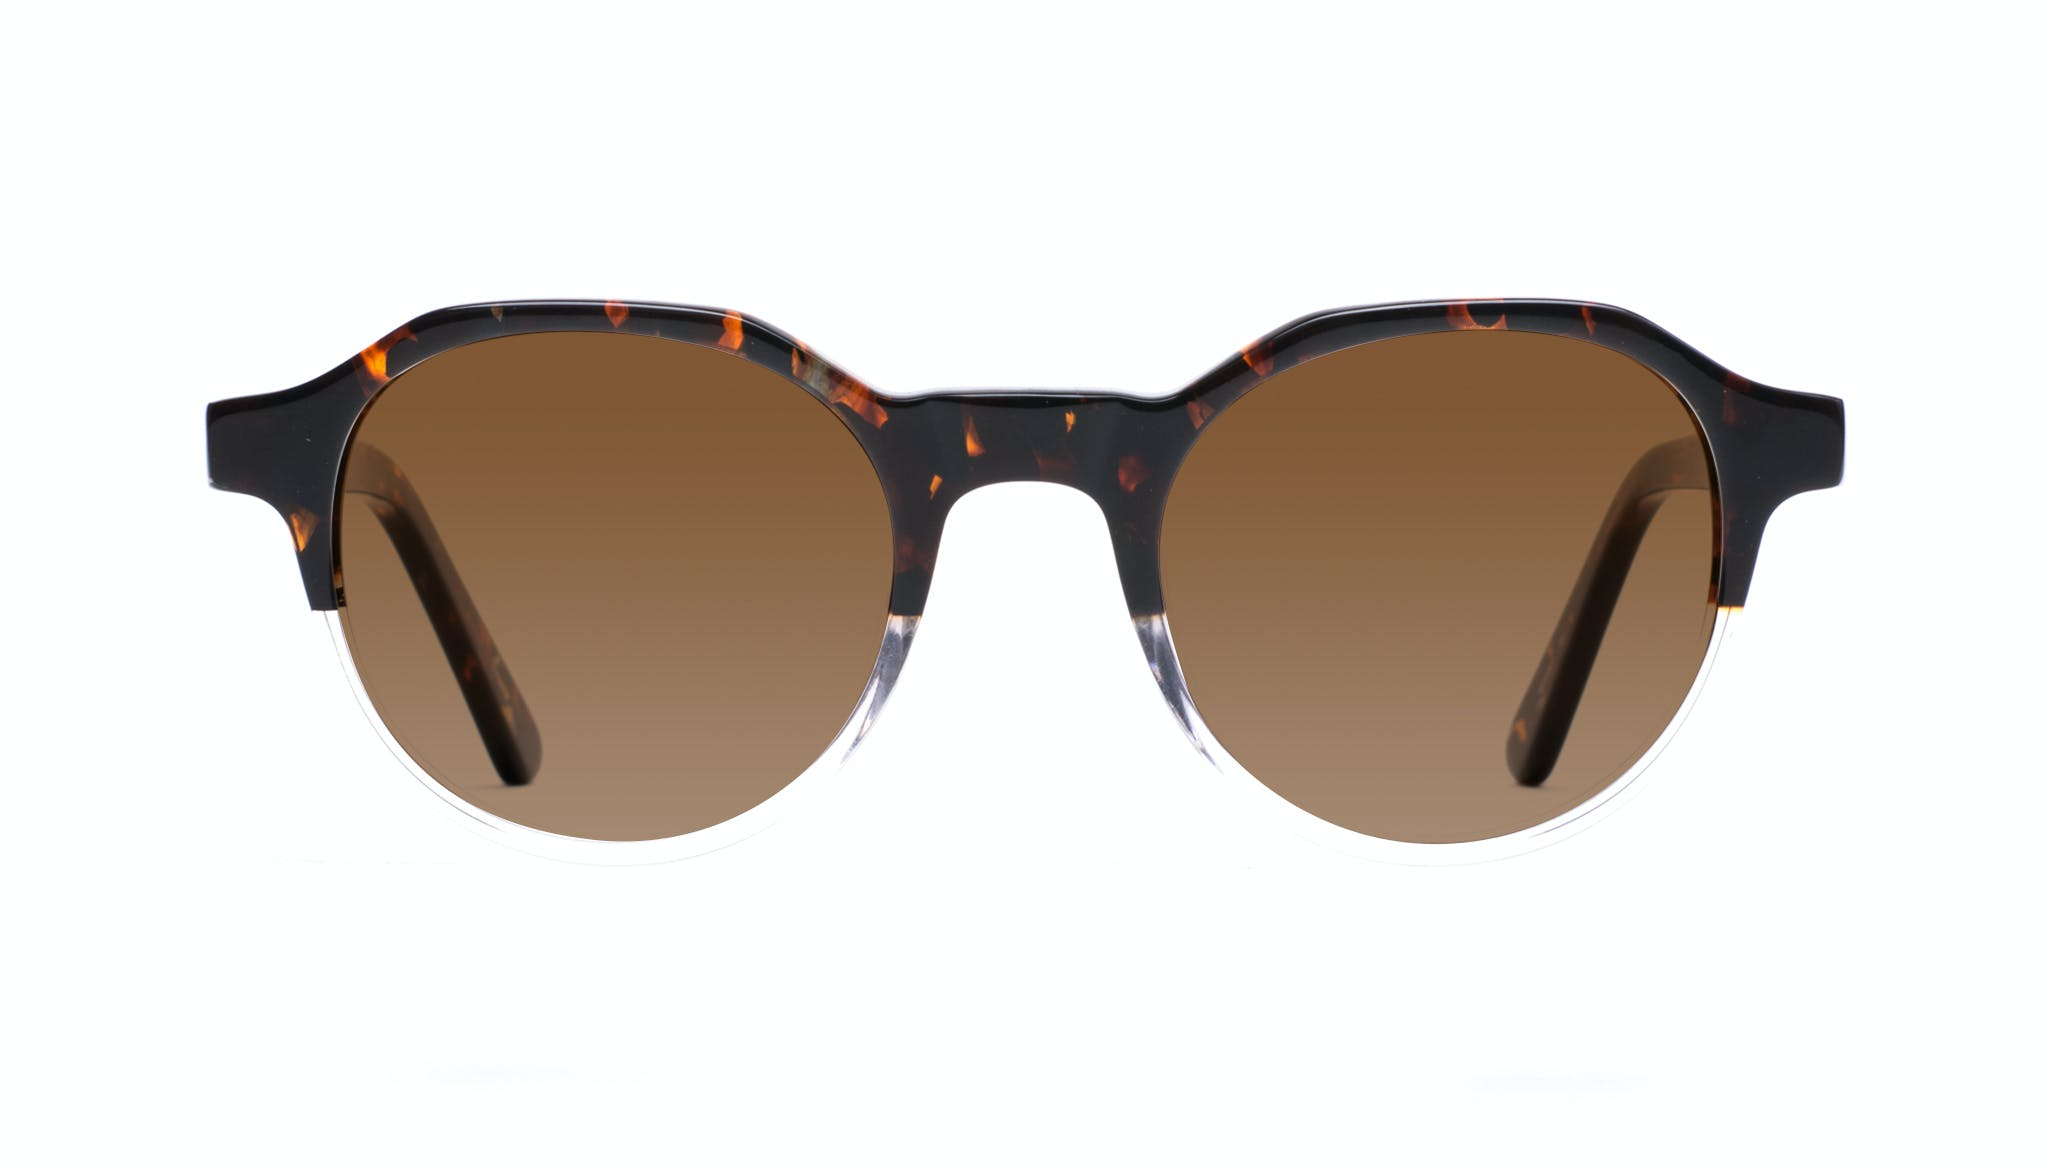 Affordable Fashion Glasses Round Sunglasses Men Form Mahogany Clear Front